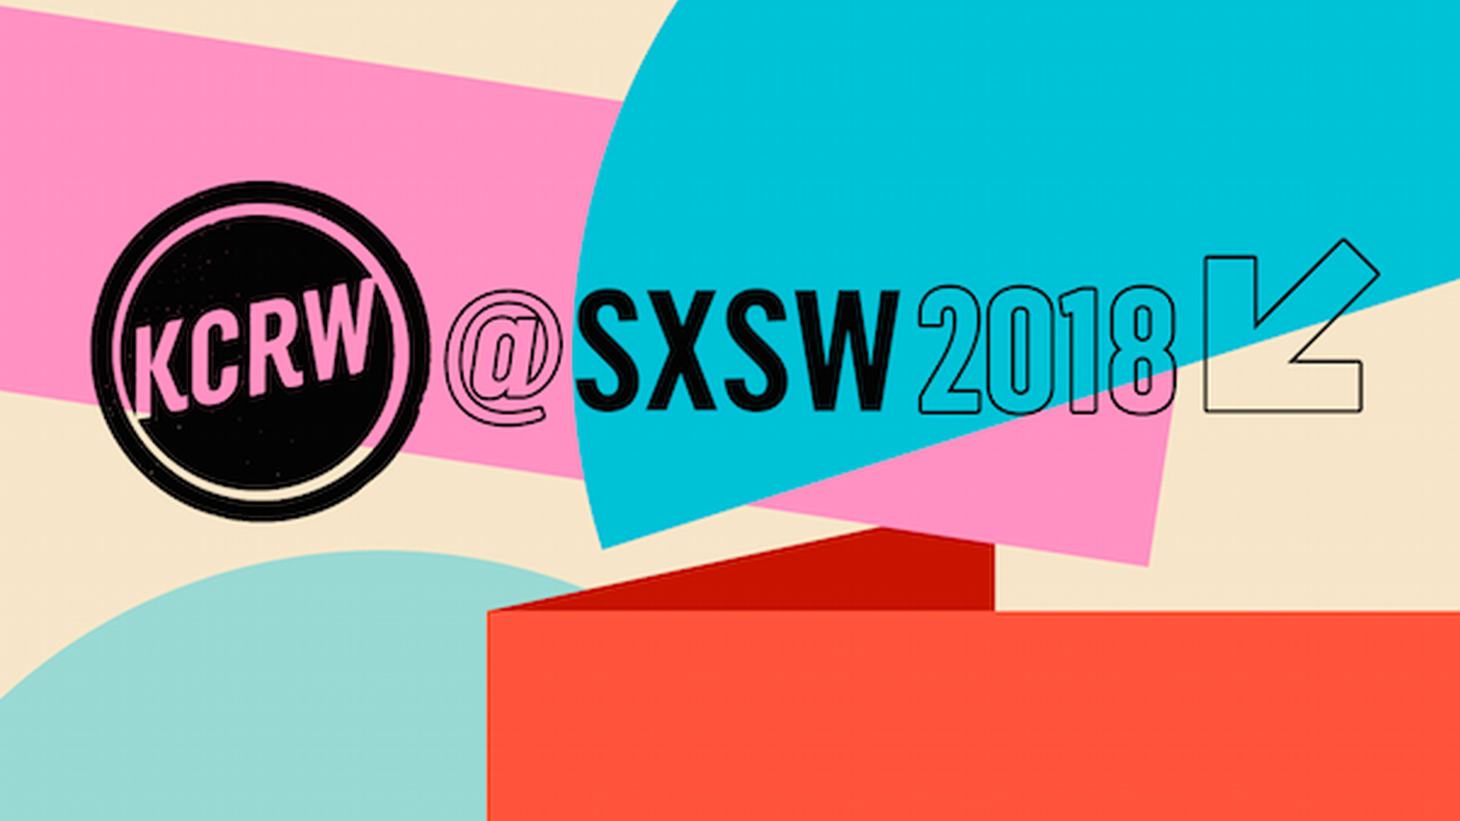 KCRW's SXSW crew took in a day full of music from Austin, TX. Our daytime showcase featured outstanding performances from: Wye Oak, Sudan Archives, and Marlon Williams.